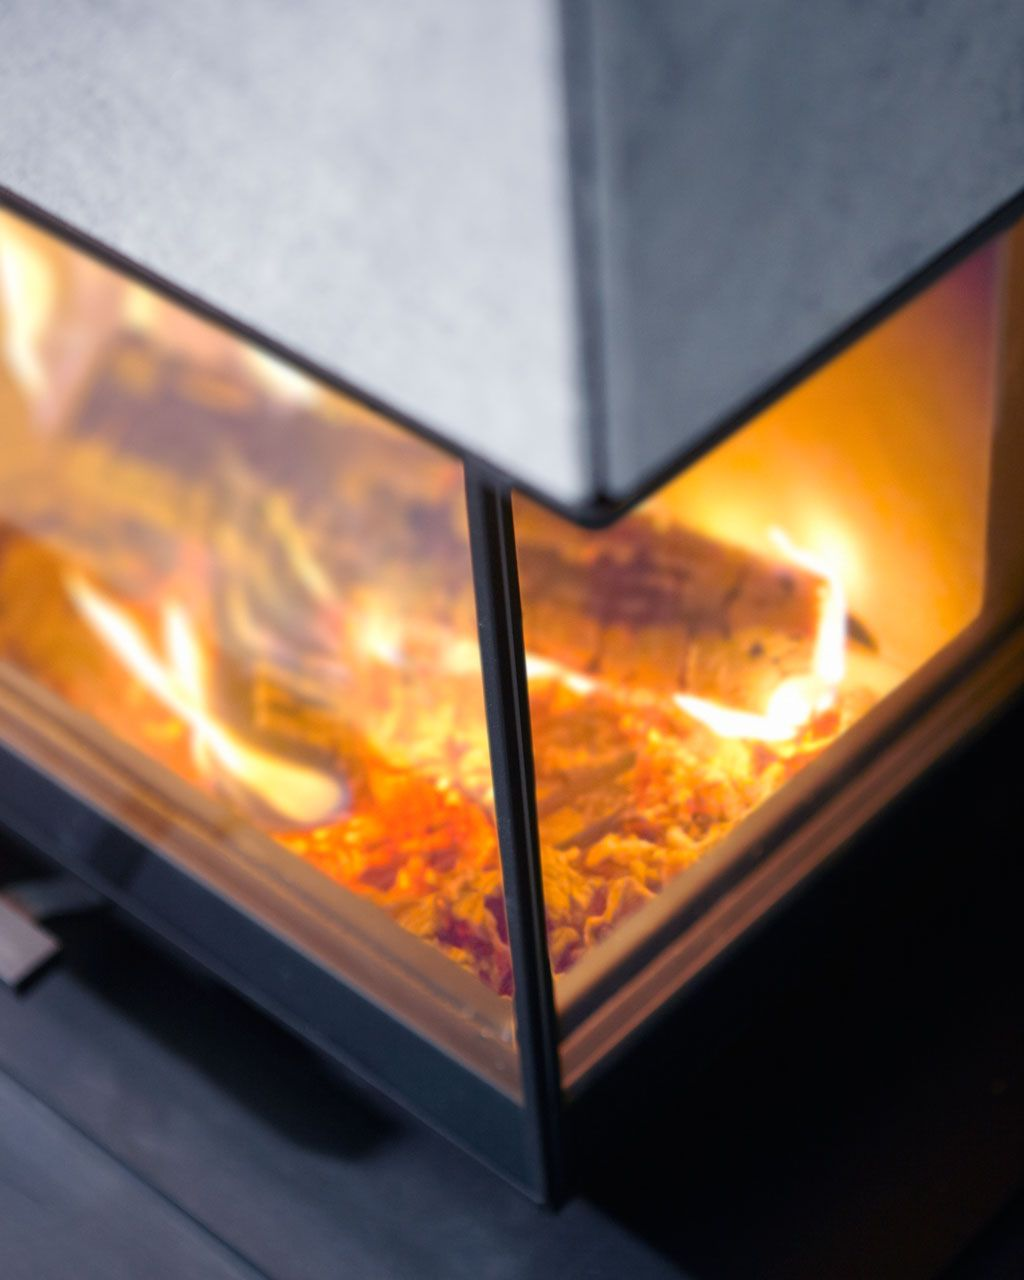 Angled glass door available in both left and right. #soapstone #fireplace #contura http://www.contura.eu